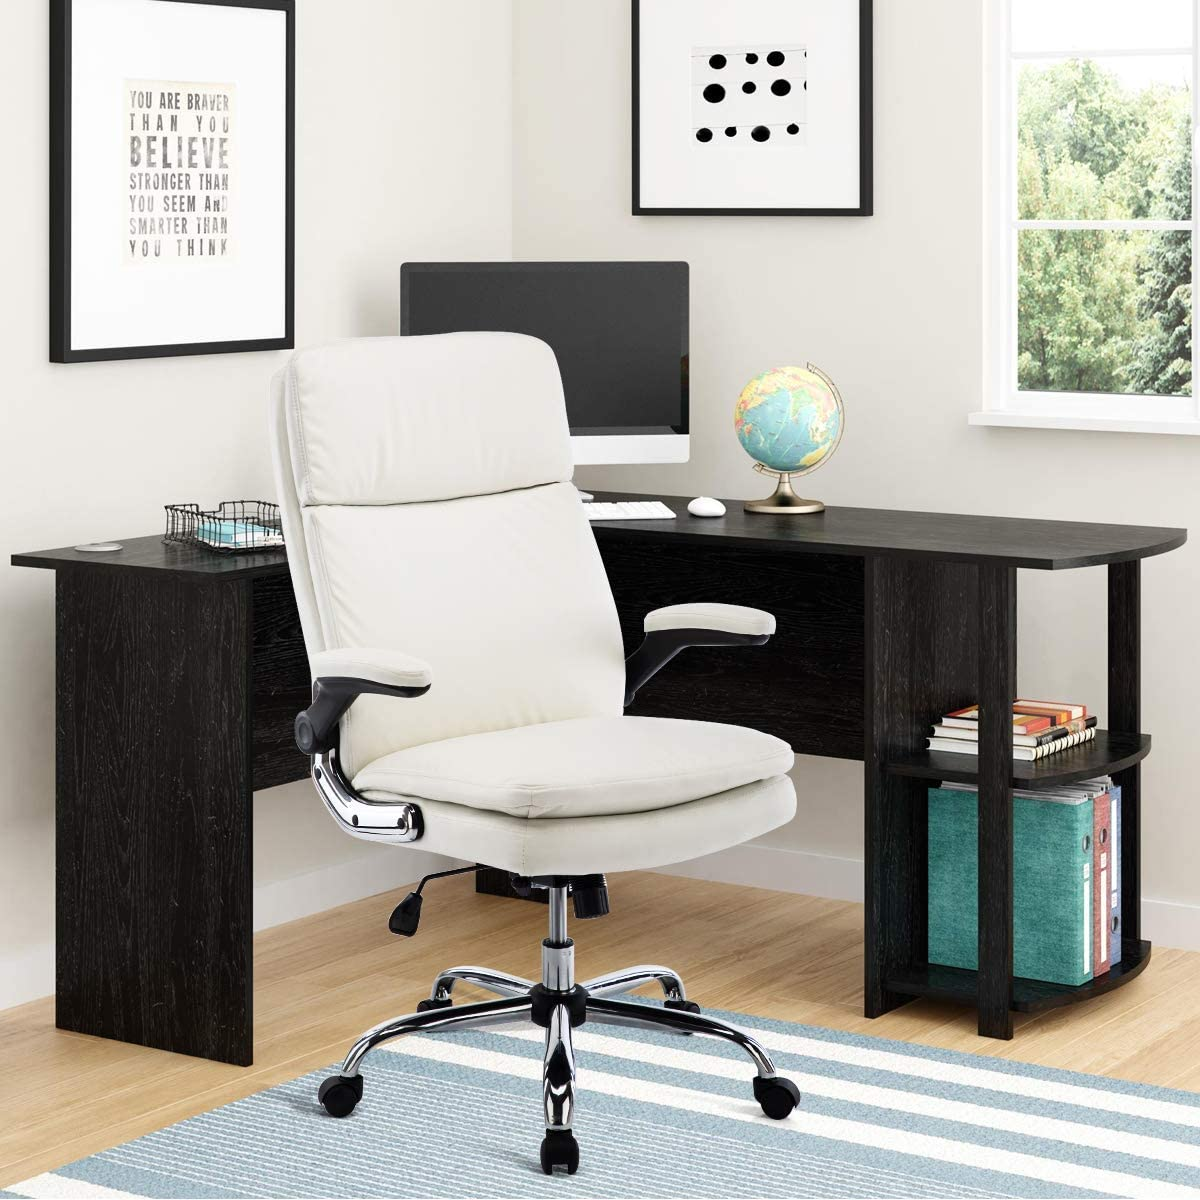 SP PU Office Chair Adjustable Tilt Angle and Flip-up Arms Executive Computer Desk Chair, Thick Padding for Comfort and Ergonomic Design for Lumbar Support (6133WH)